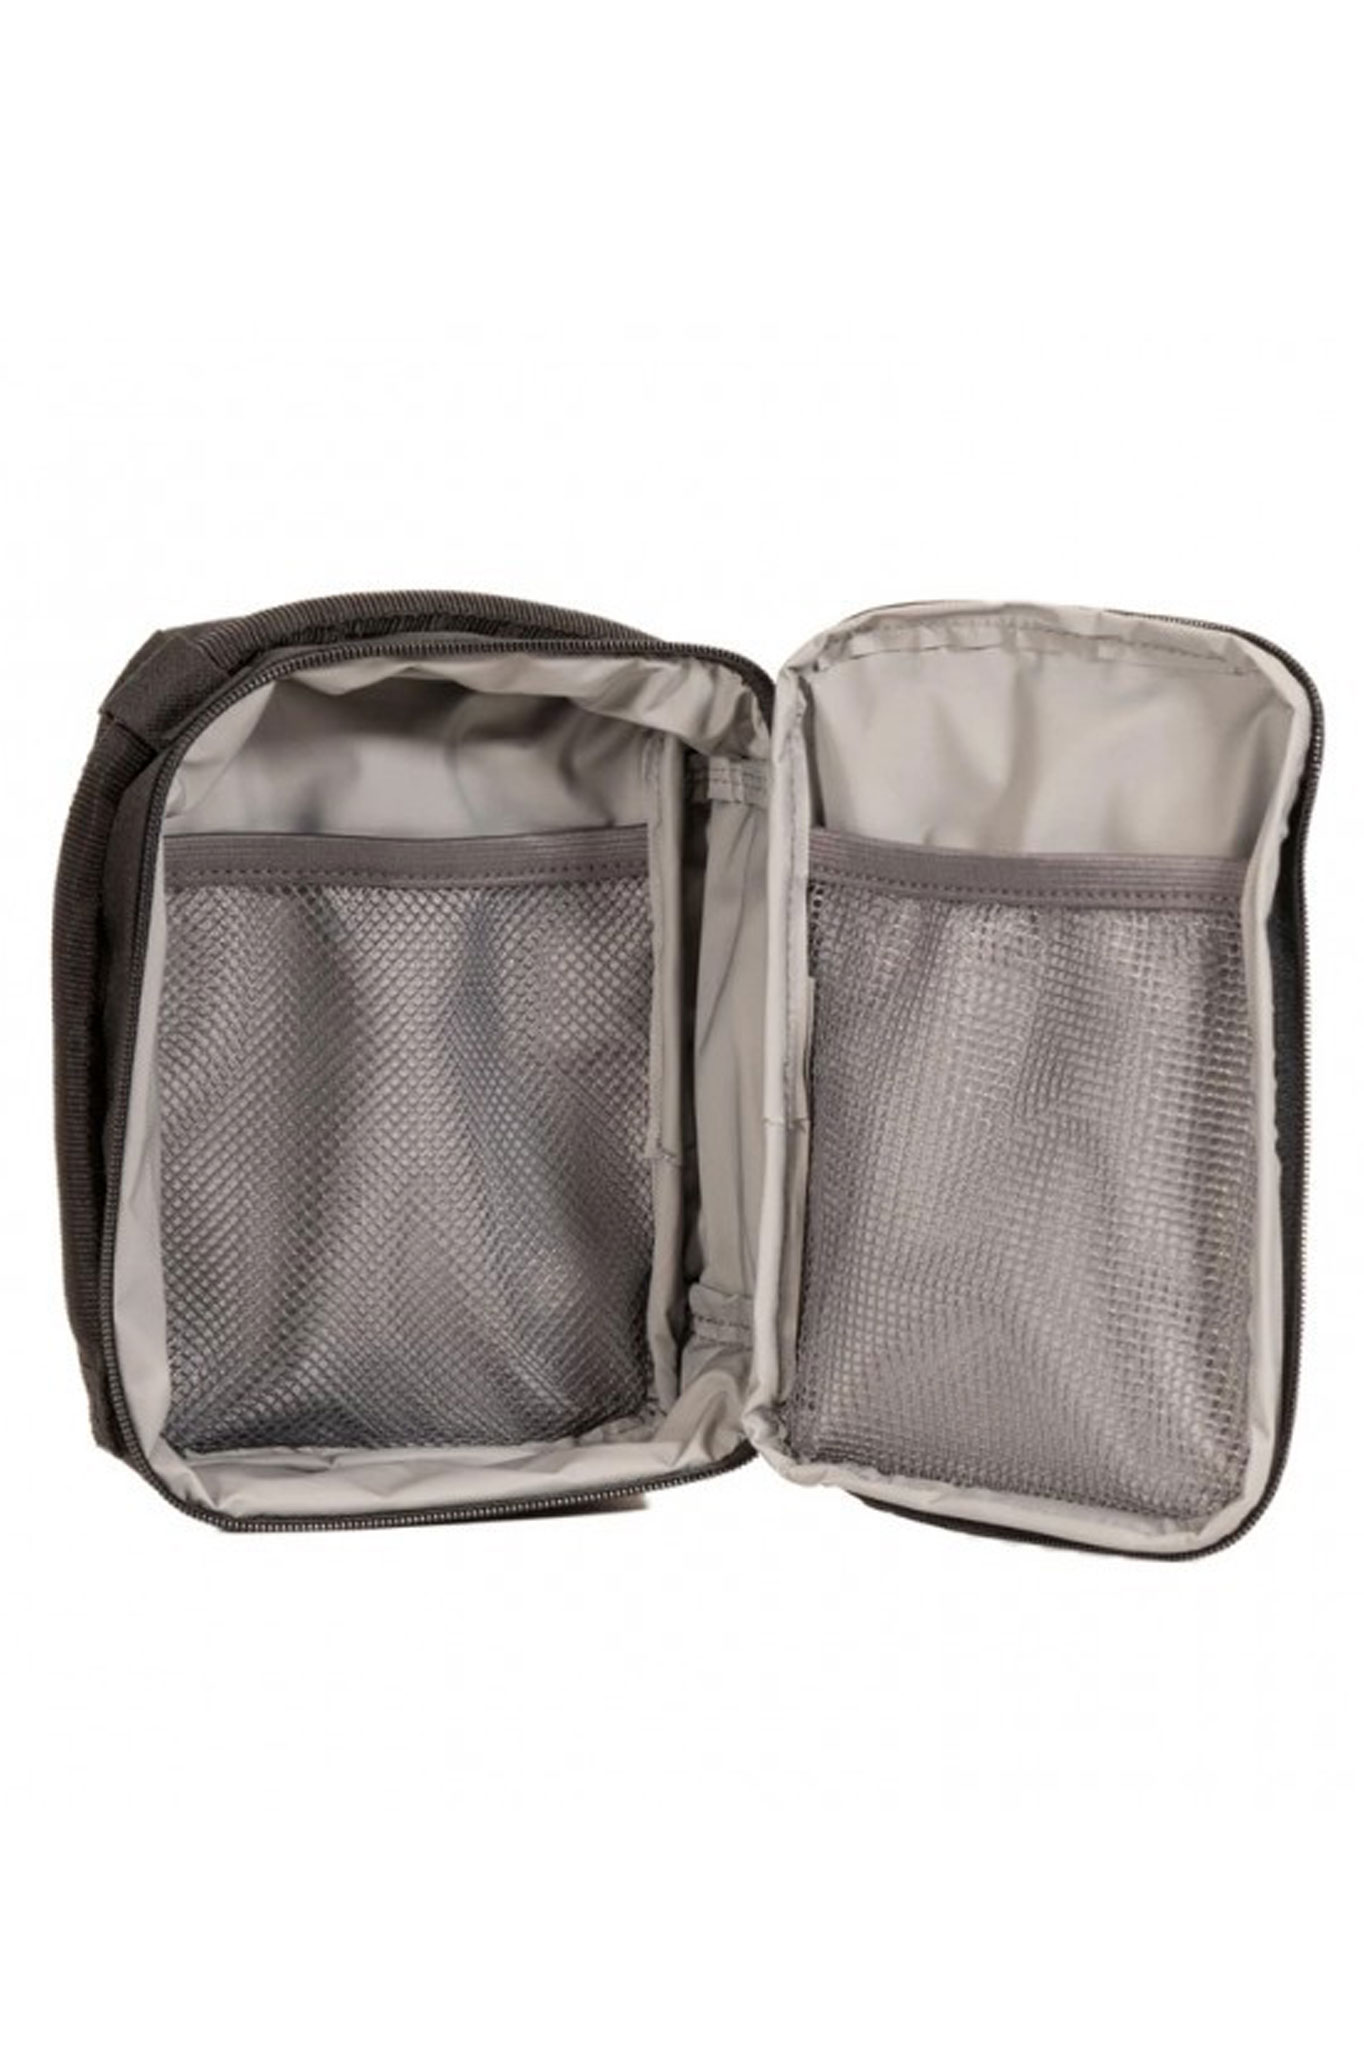 TÚI GIỮ NHIỆT COOLER POUCH